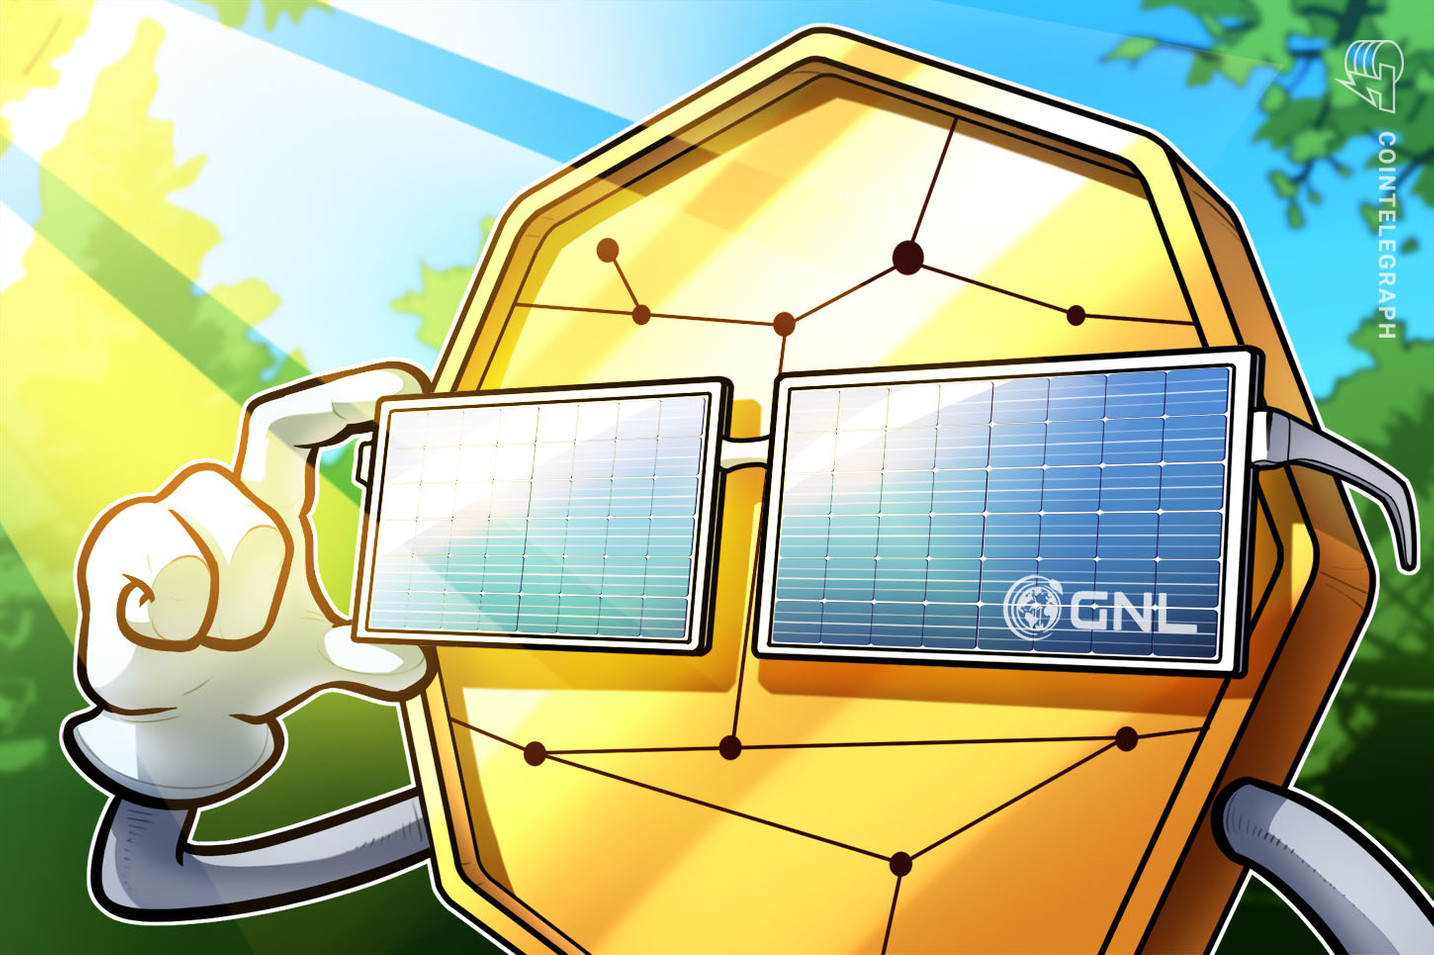 This project wants its crypto token to be the source of renewable energy creation